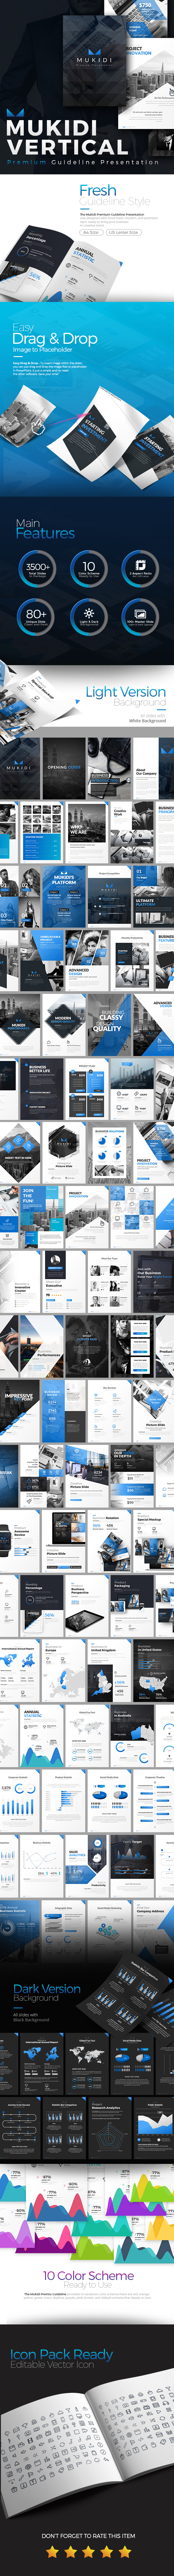 Mukidi vertical premium presentation by brandearth graphicriver mukidi vertical premium presentation business powerpoint templates toneelgroepblik Images